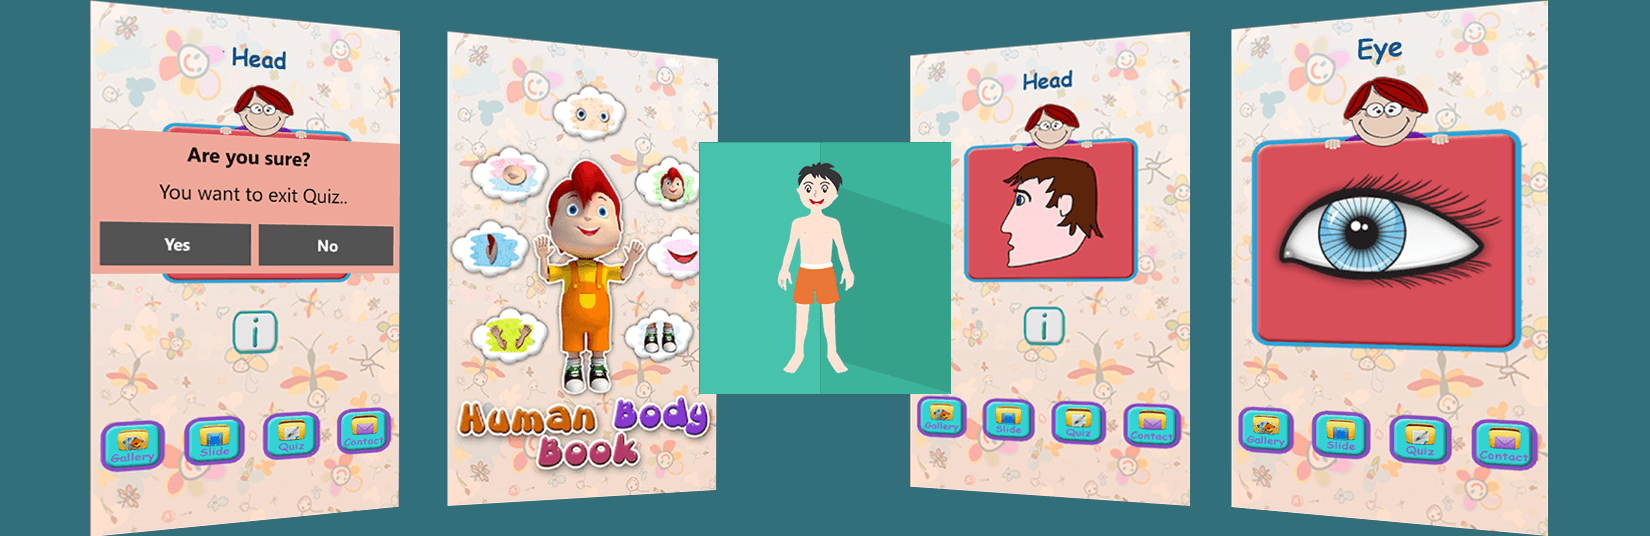 Bodyparts Book App : A Perfect Guide for Learning of Bodyparts Kids!